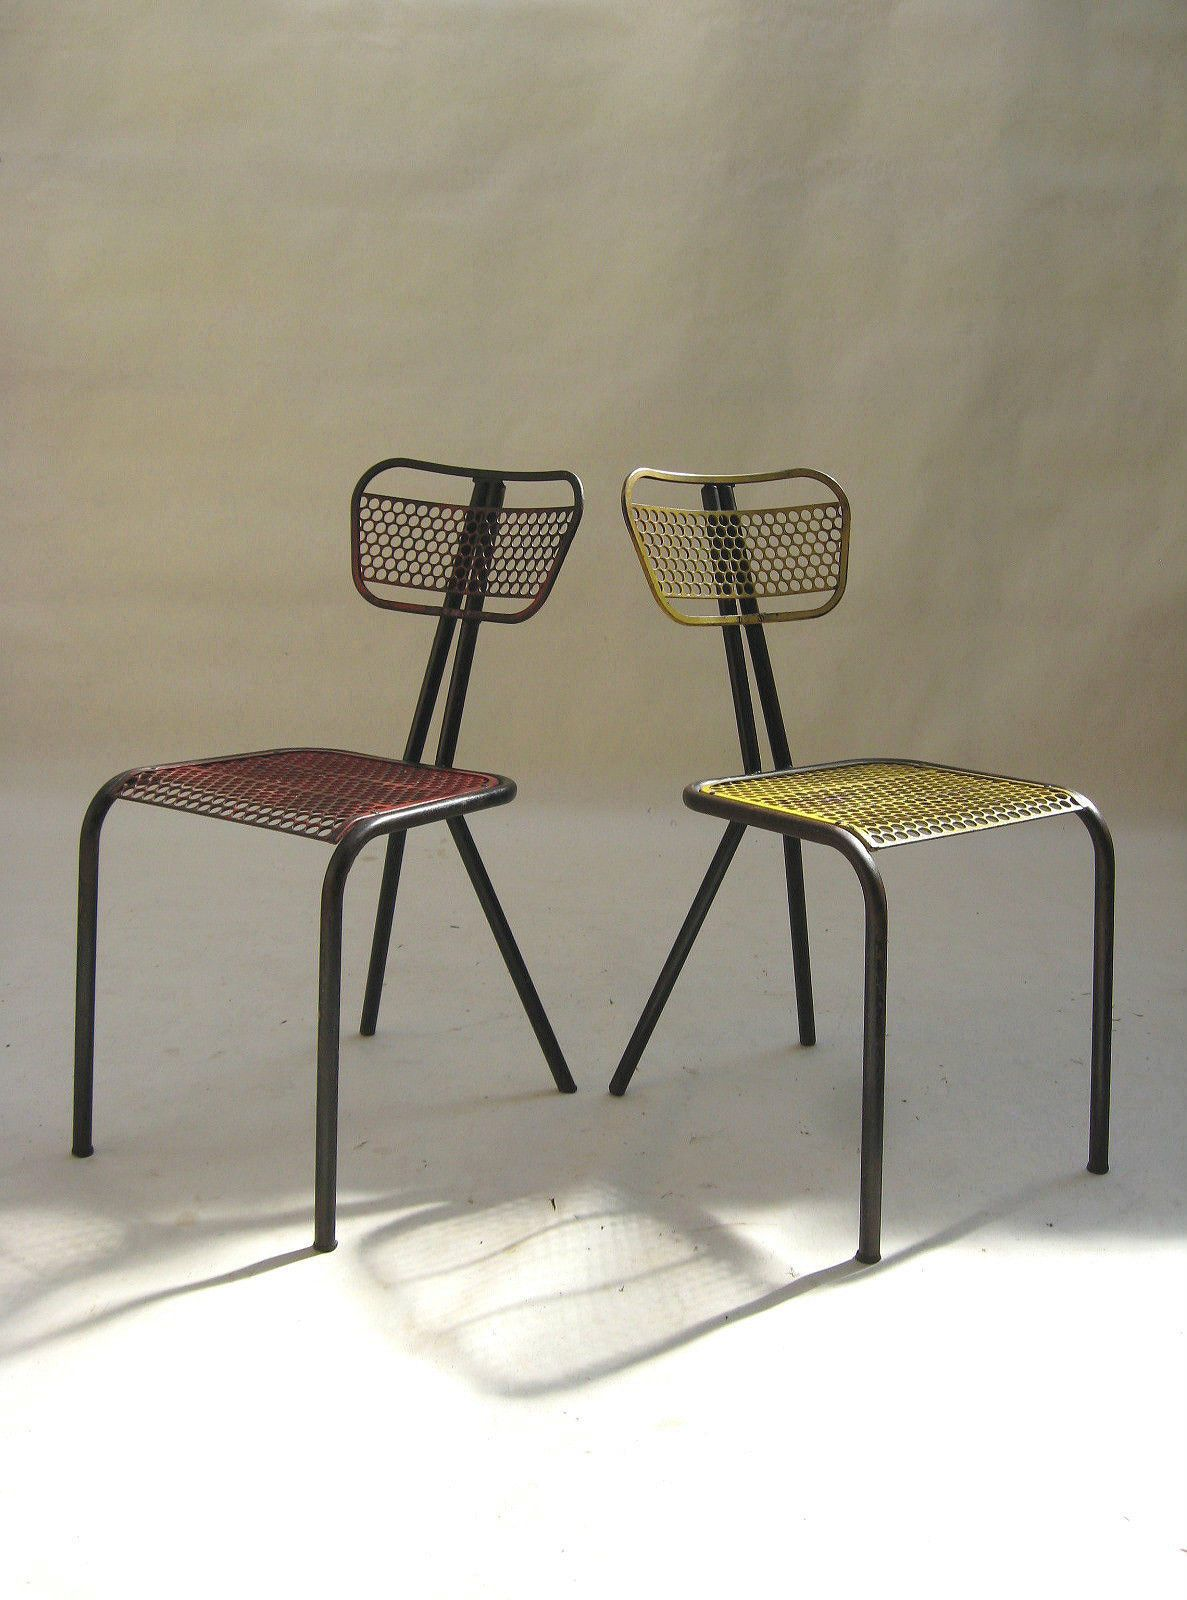 Very RARE Set of 2 Perf Metal Chairs by René Malaval 1948